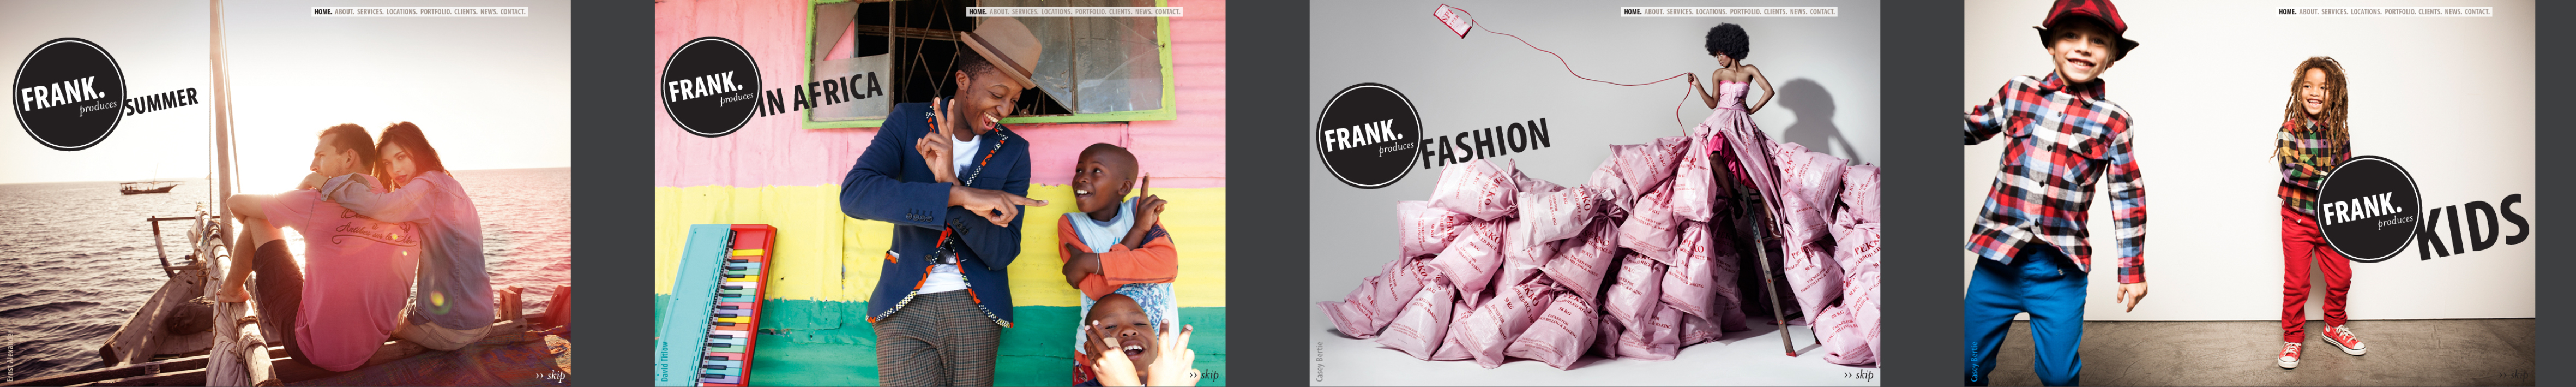 Frank's new website launches